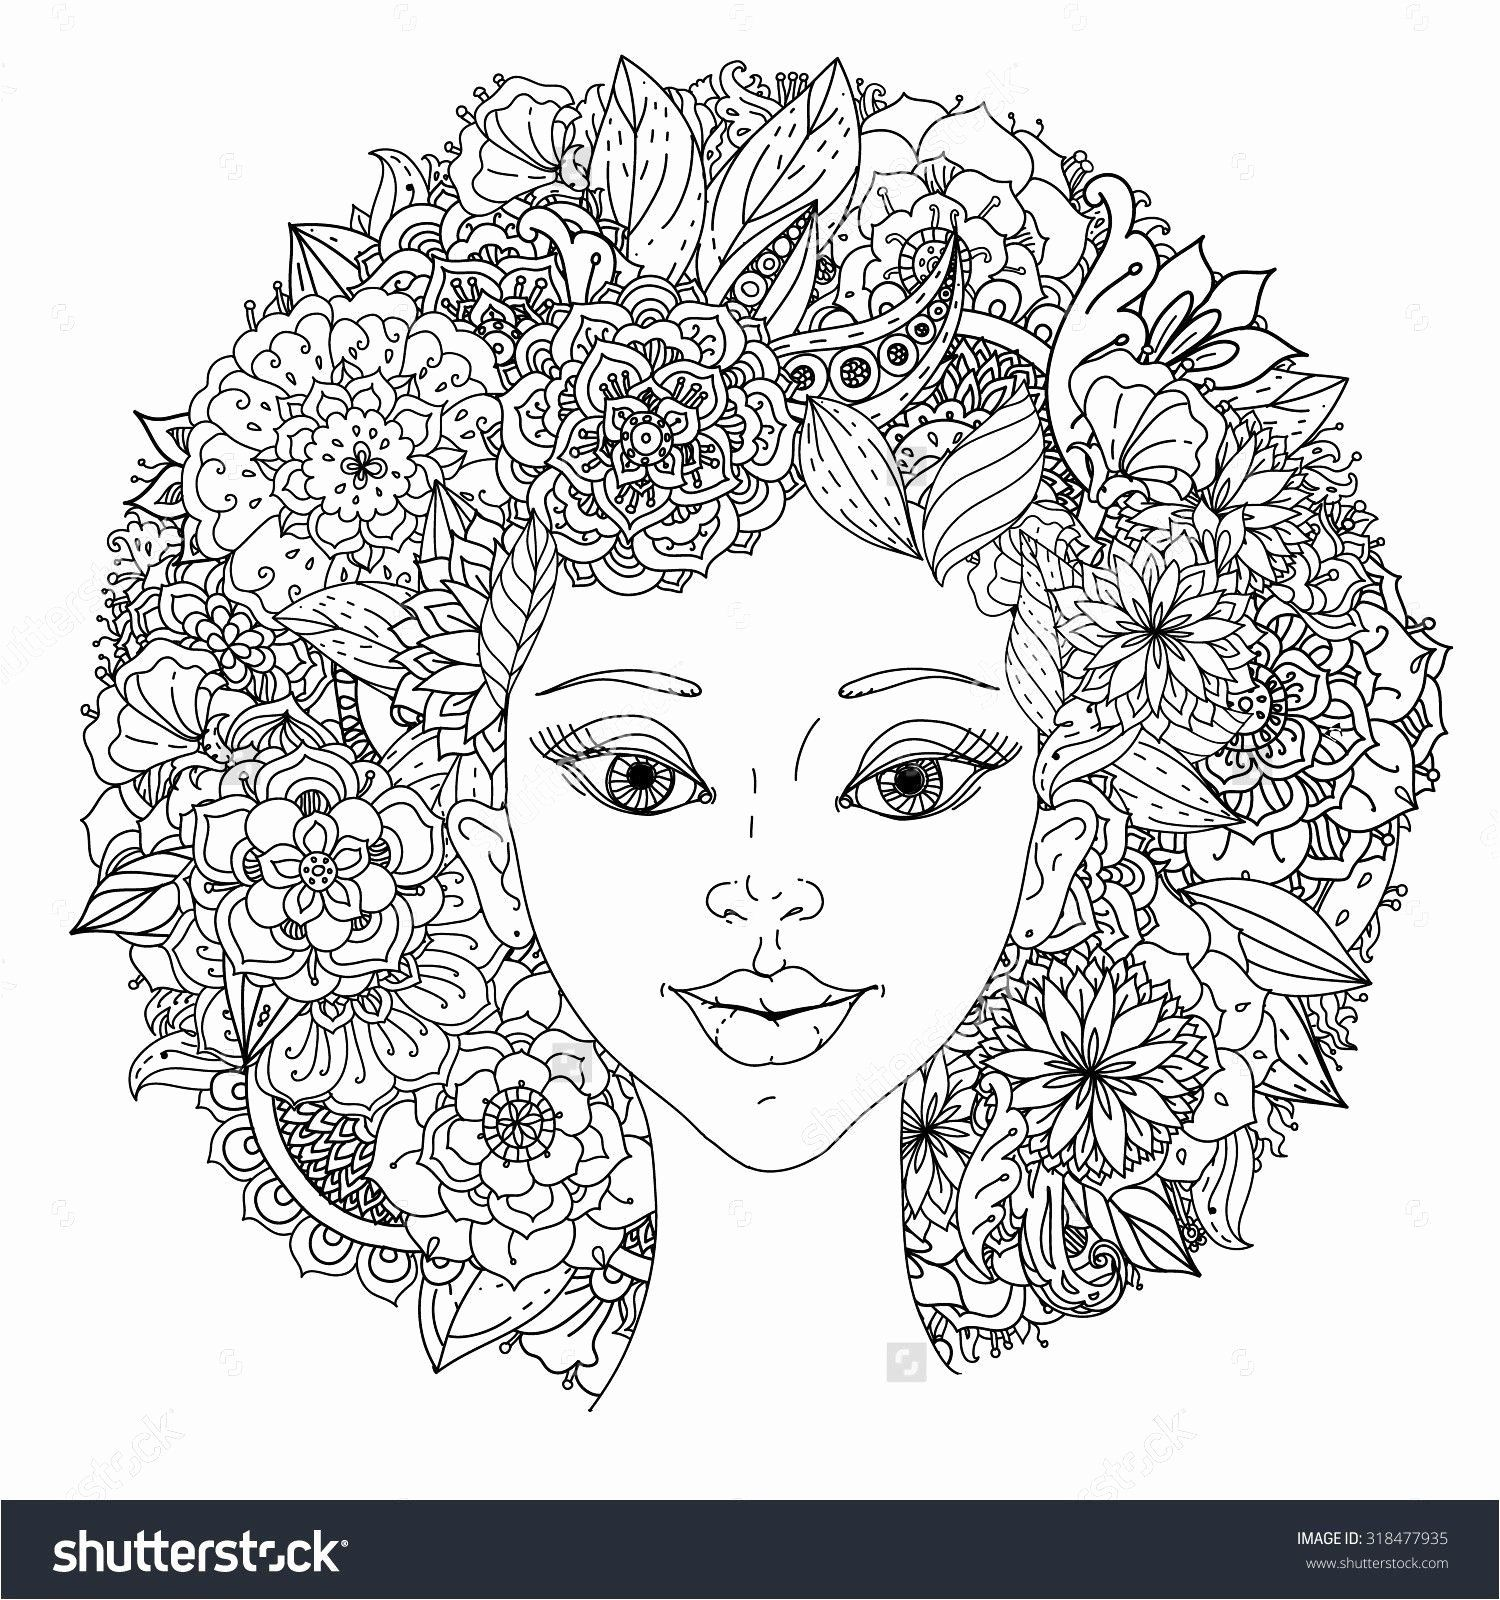 Art Zone Coloring Books Lovely Luxury Pigment Coloring Book Coloring Pages For Girls Coloring Books Coloring Pages